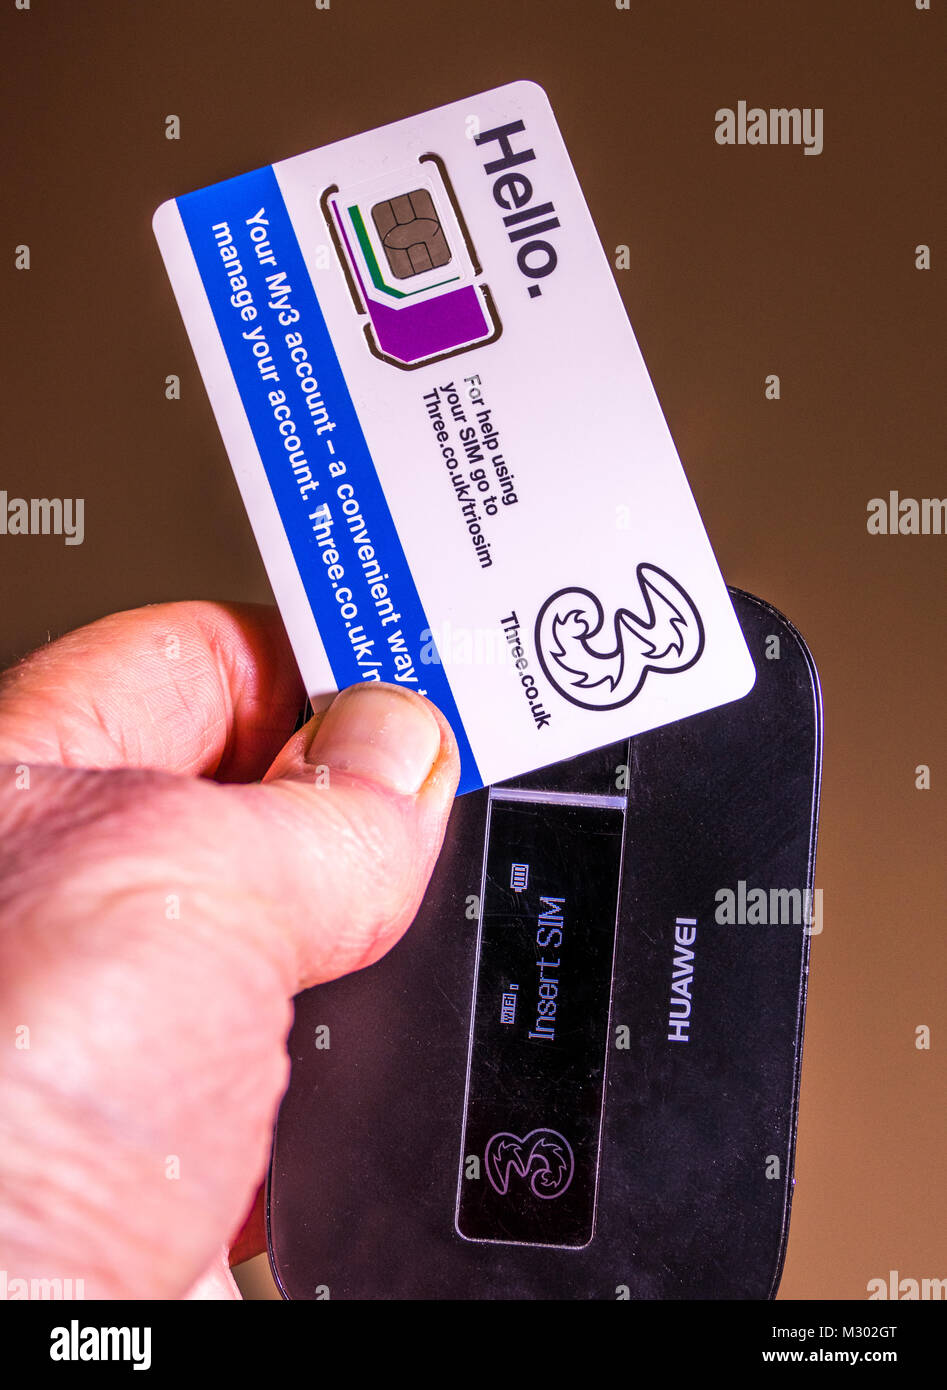 Man's hand holding a Three data Trio (three sized) SIM card, to be inserted into a Huawei portable wifi router, - Stock Image